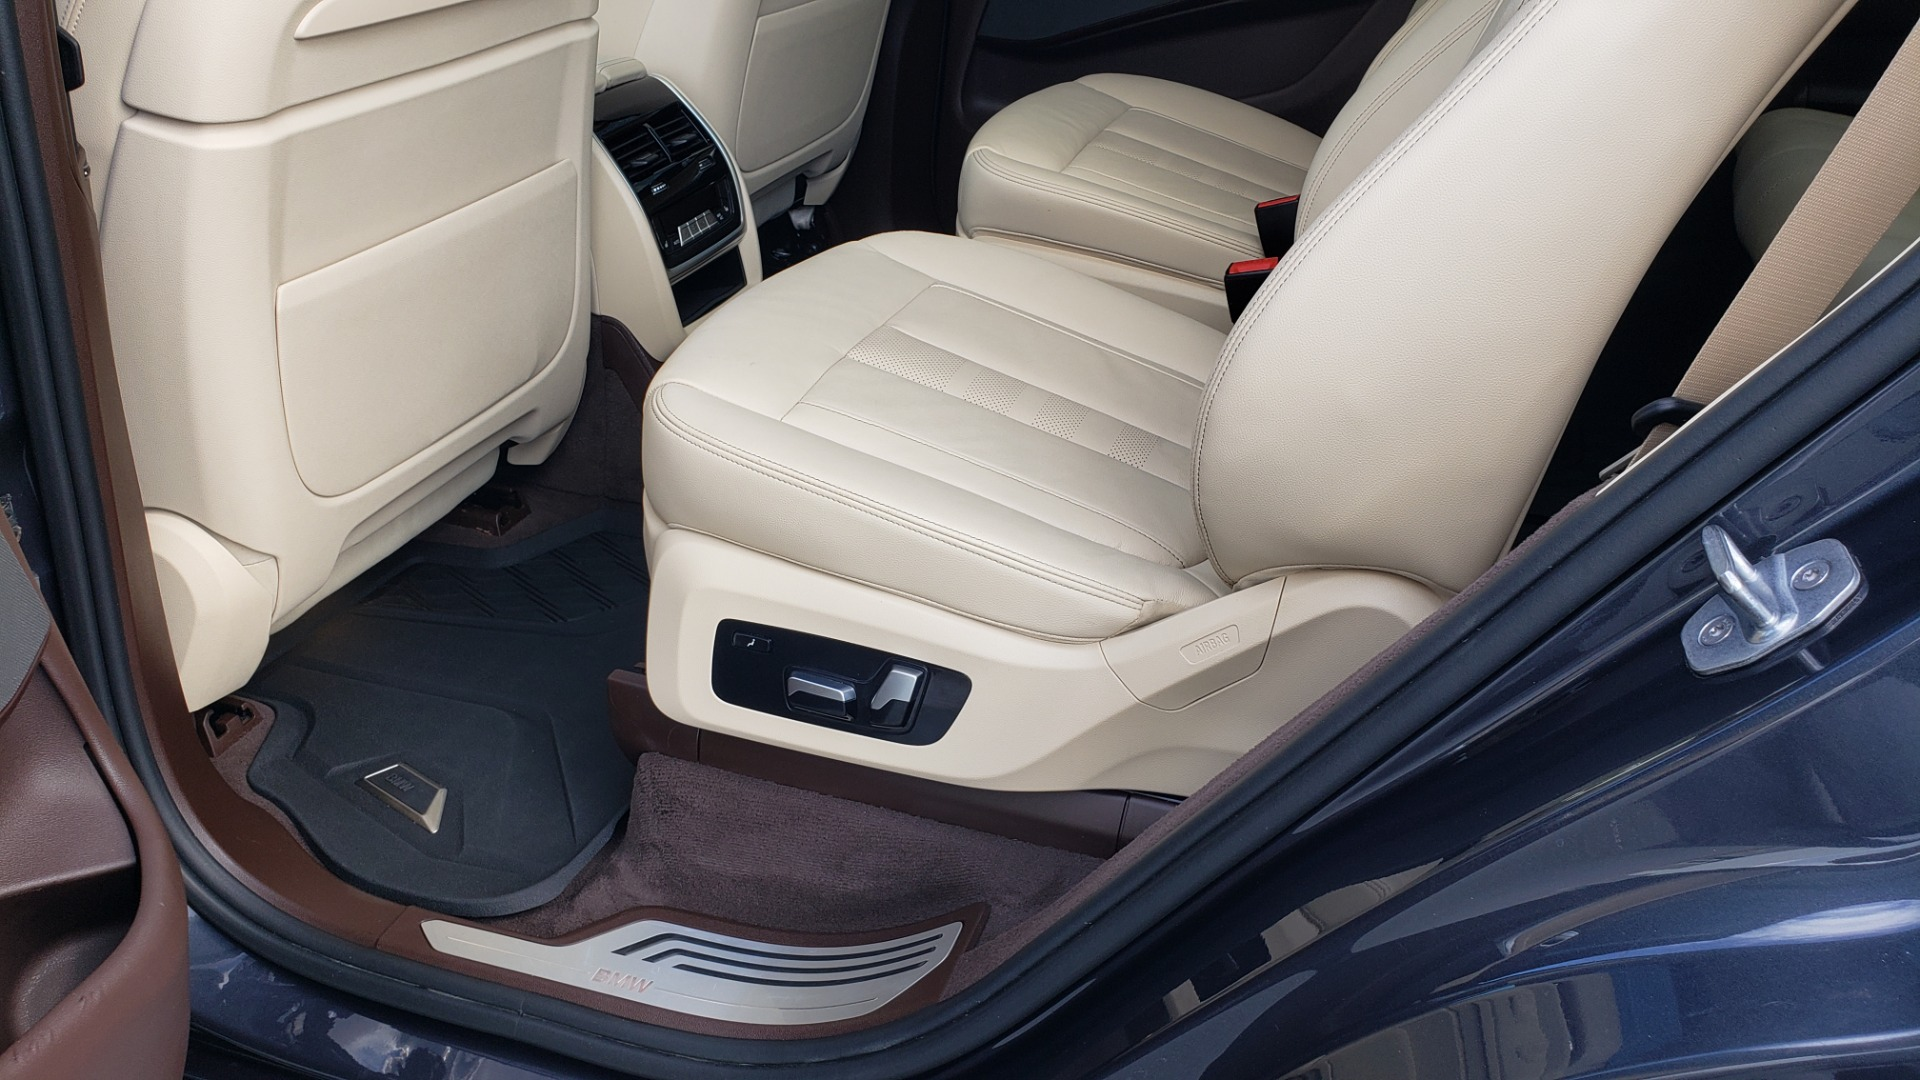 Used 2019 BMW X7 XDRIVE40I PREMIUM / LUXURY / COLD WEATHER / PARK ASST / PANORAMIC SKY / TOW for sale $75,999 at Formula Imports in Charlotte NC 28227 68